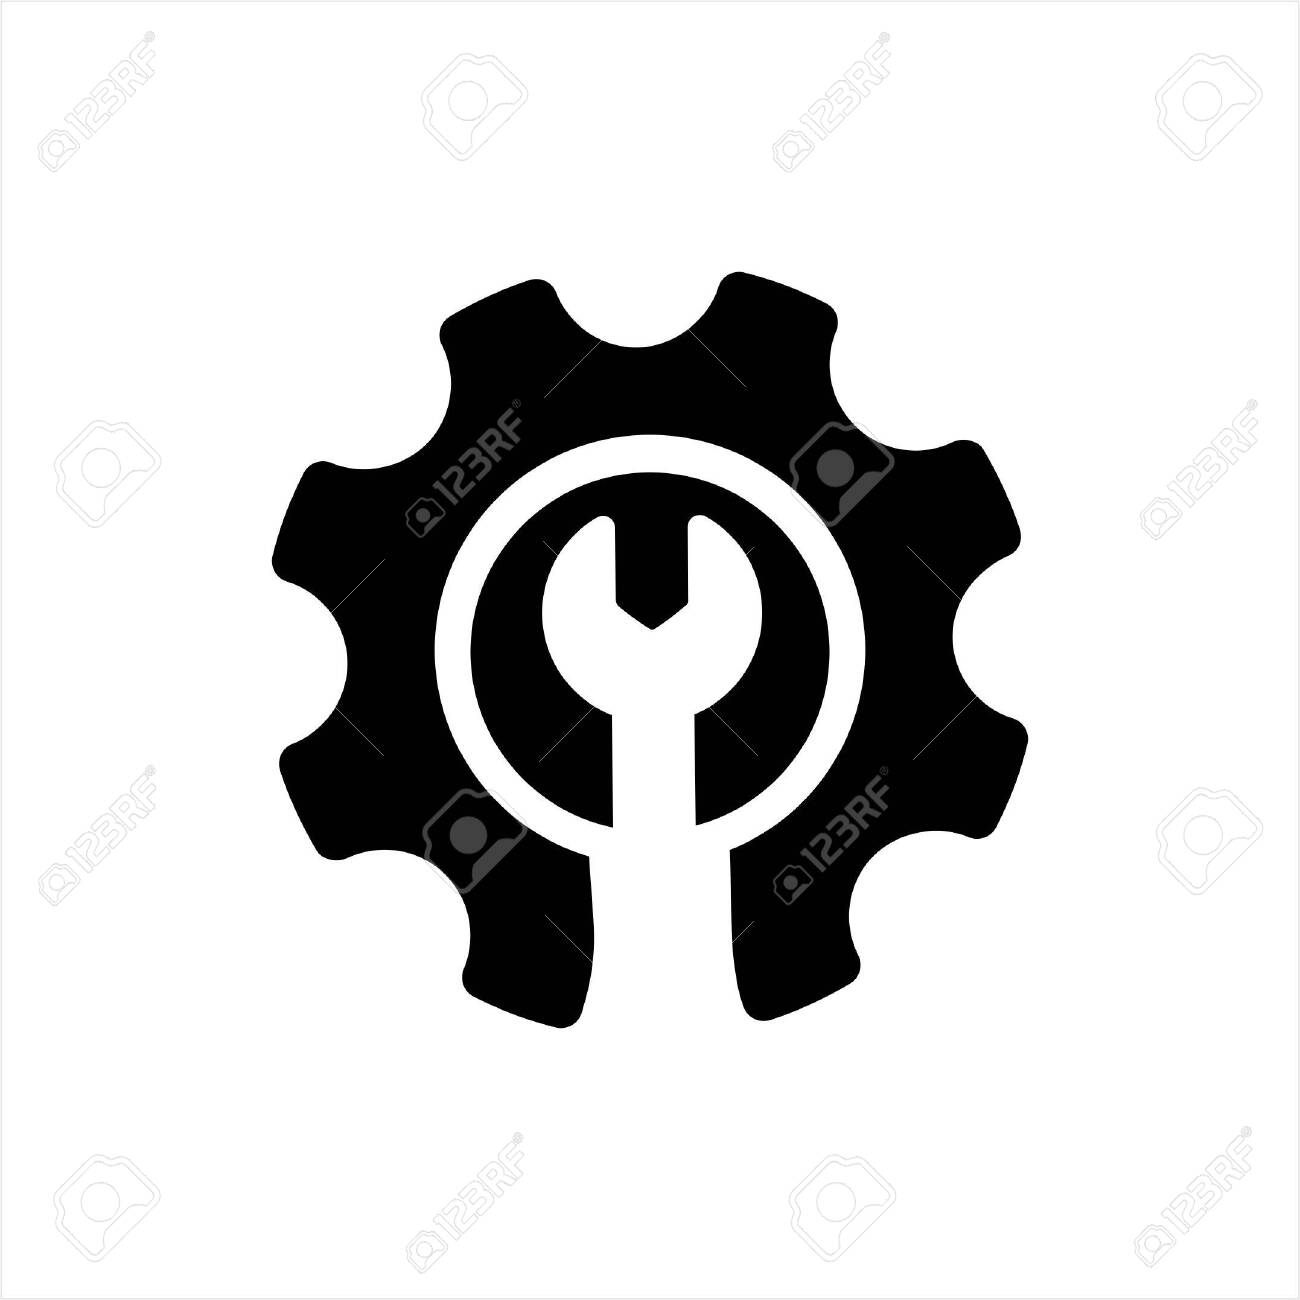 gear or cog icon on a white background